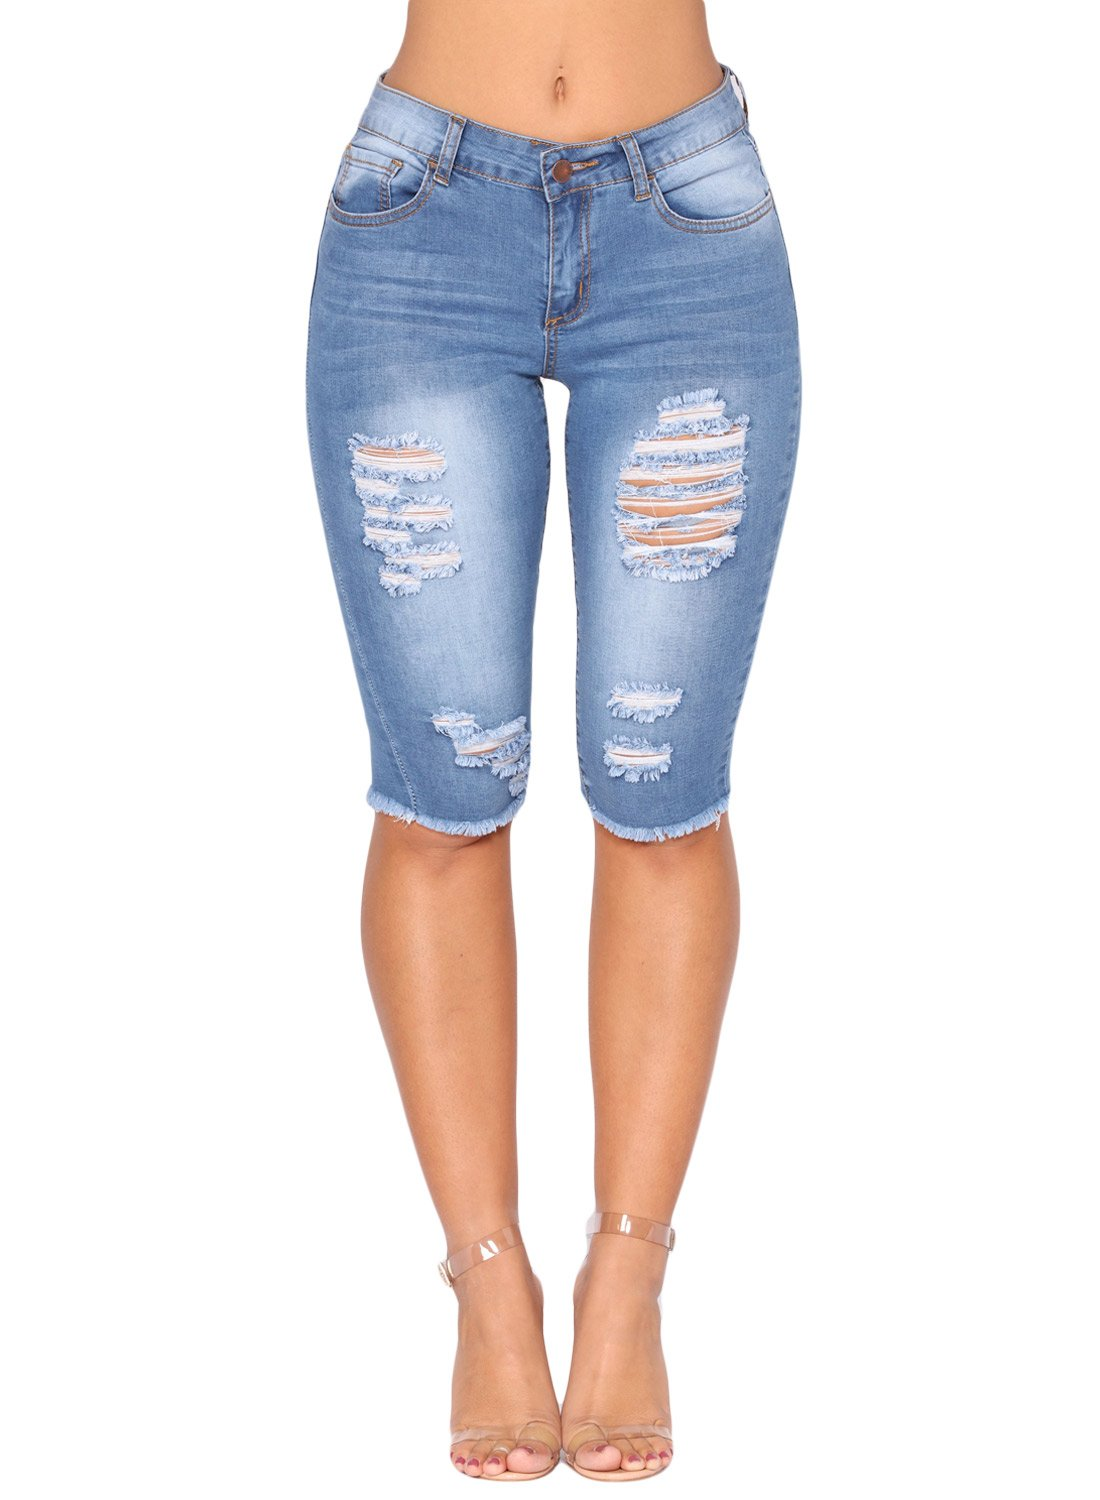 Azokoe 2018 Short Jean for Juniors Summer Casual Stretch Mid Rise Pockets Denim Ripped Destroyed Bermuda Shorts Skinny Jeans XL